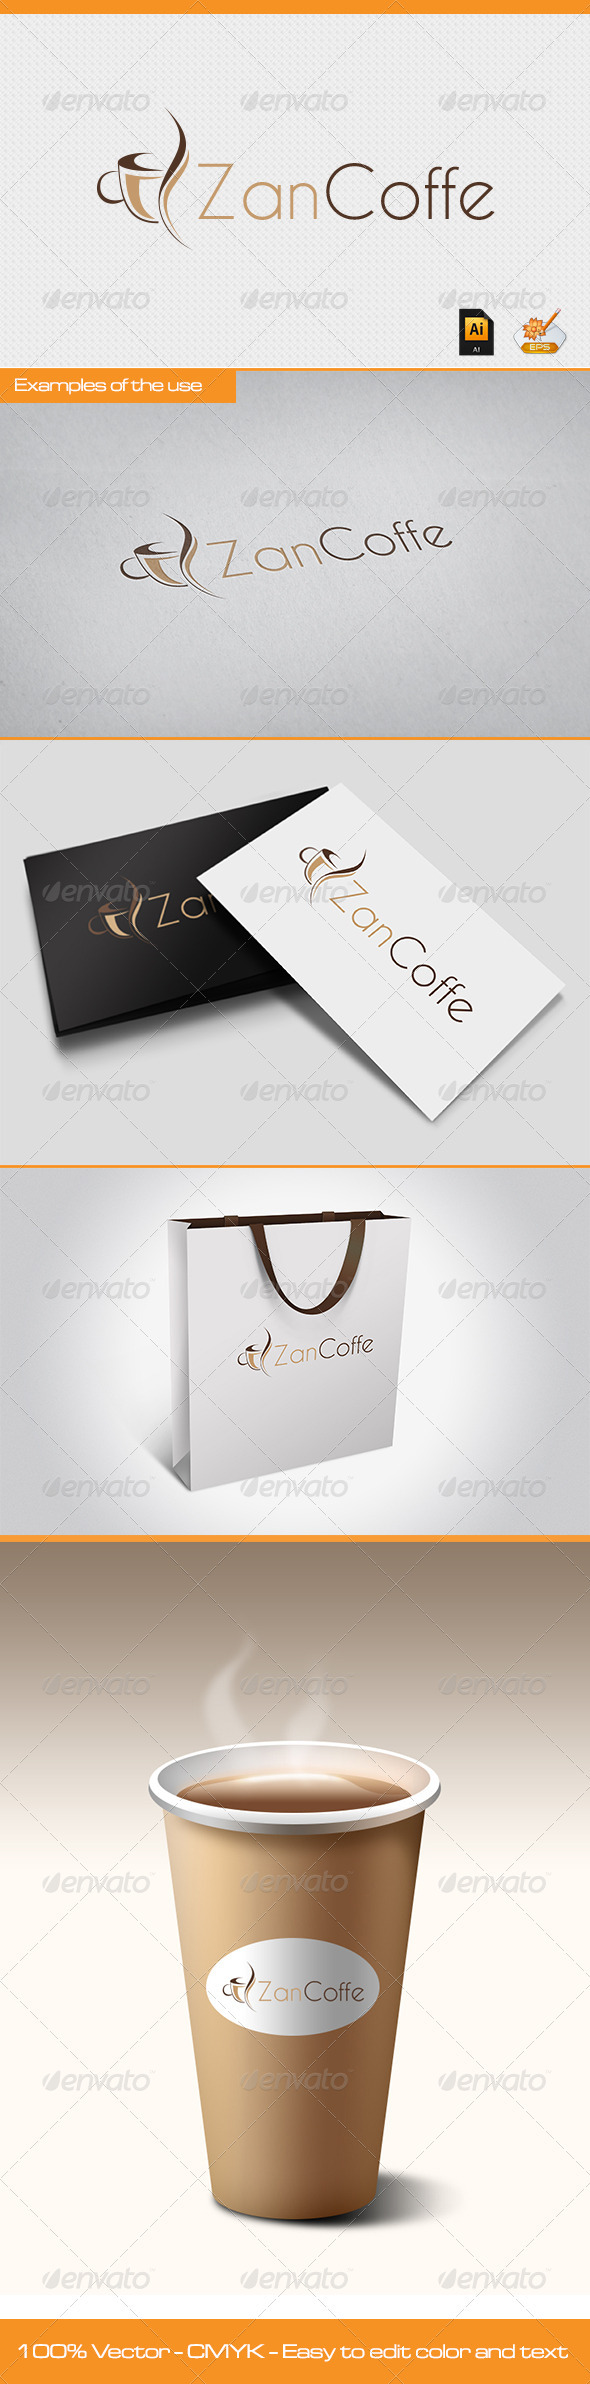 GraphicRiver Zan Coffe Logo Template 2634828